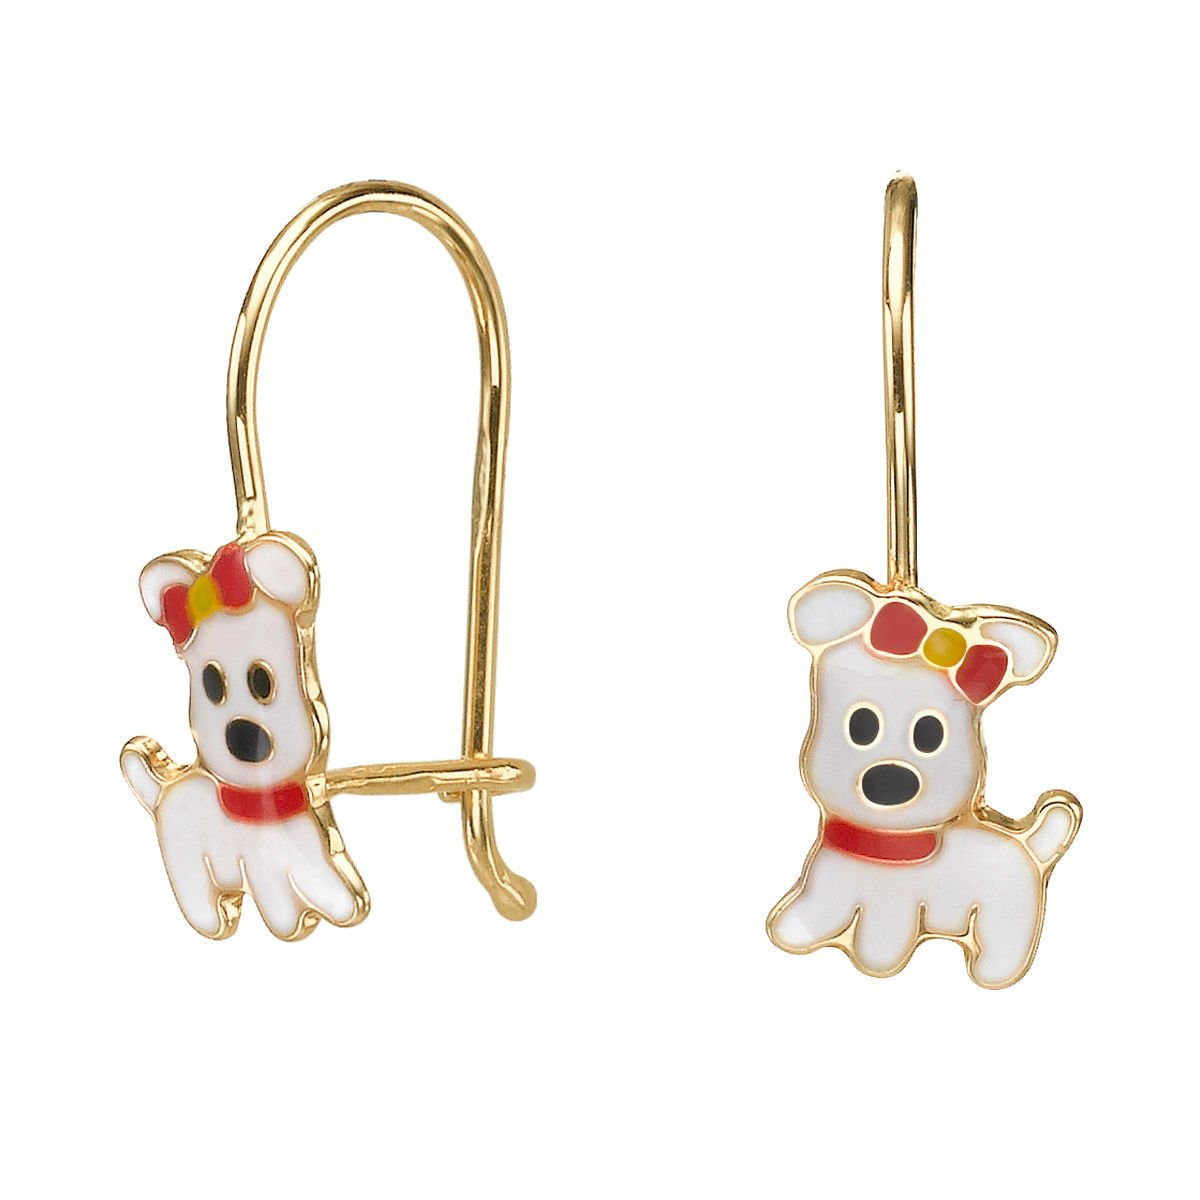 14K Solid Yellow Gold Eliptical Hoop Earrings Animals Dear Doggie Gift Kids Teen Girls Children Baby